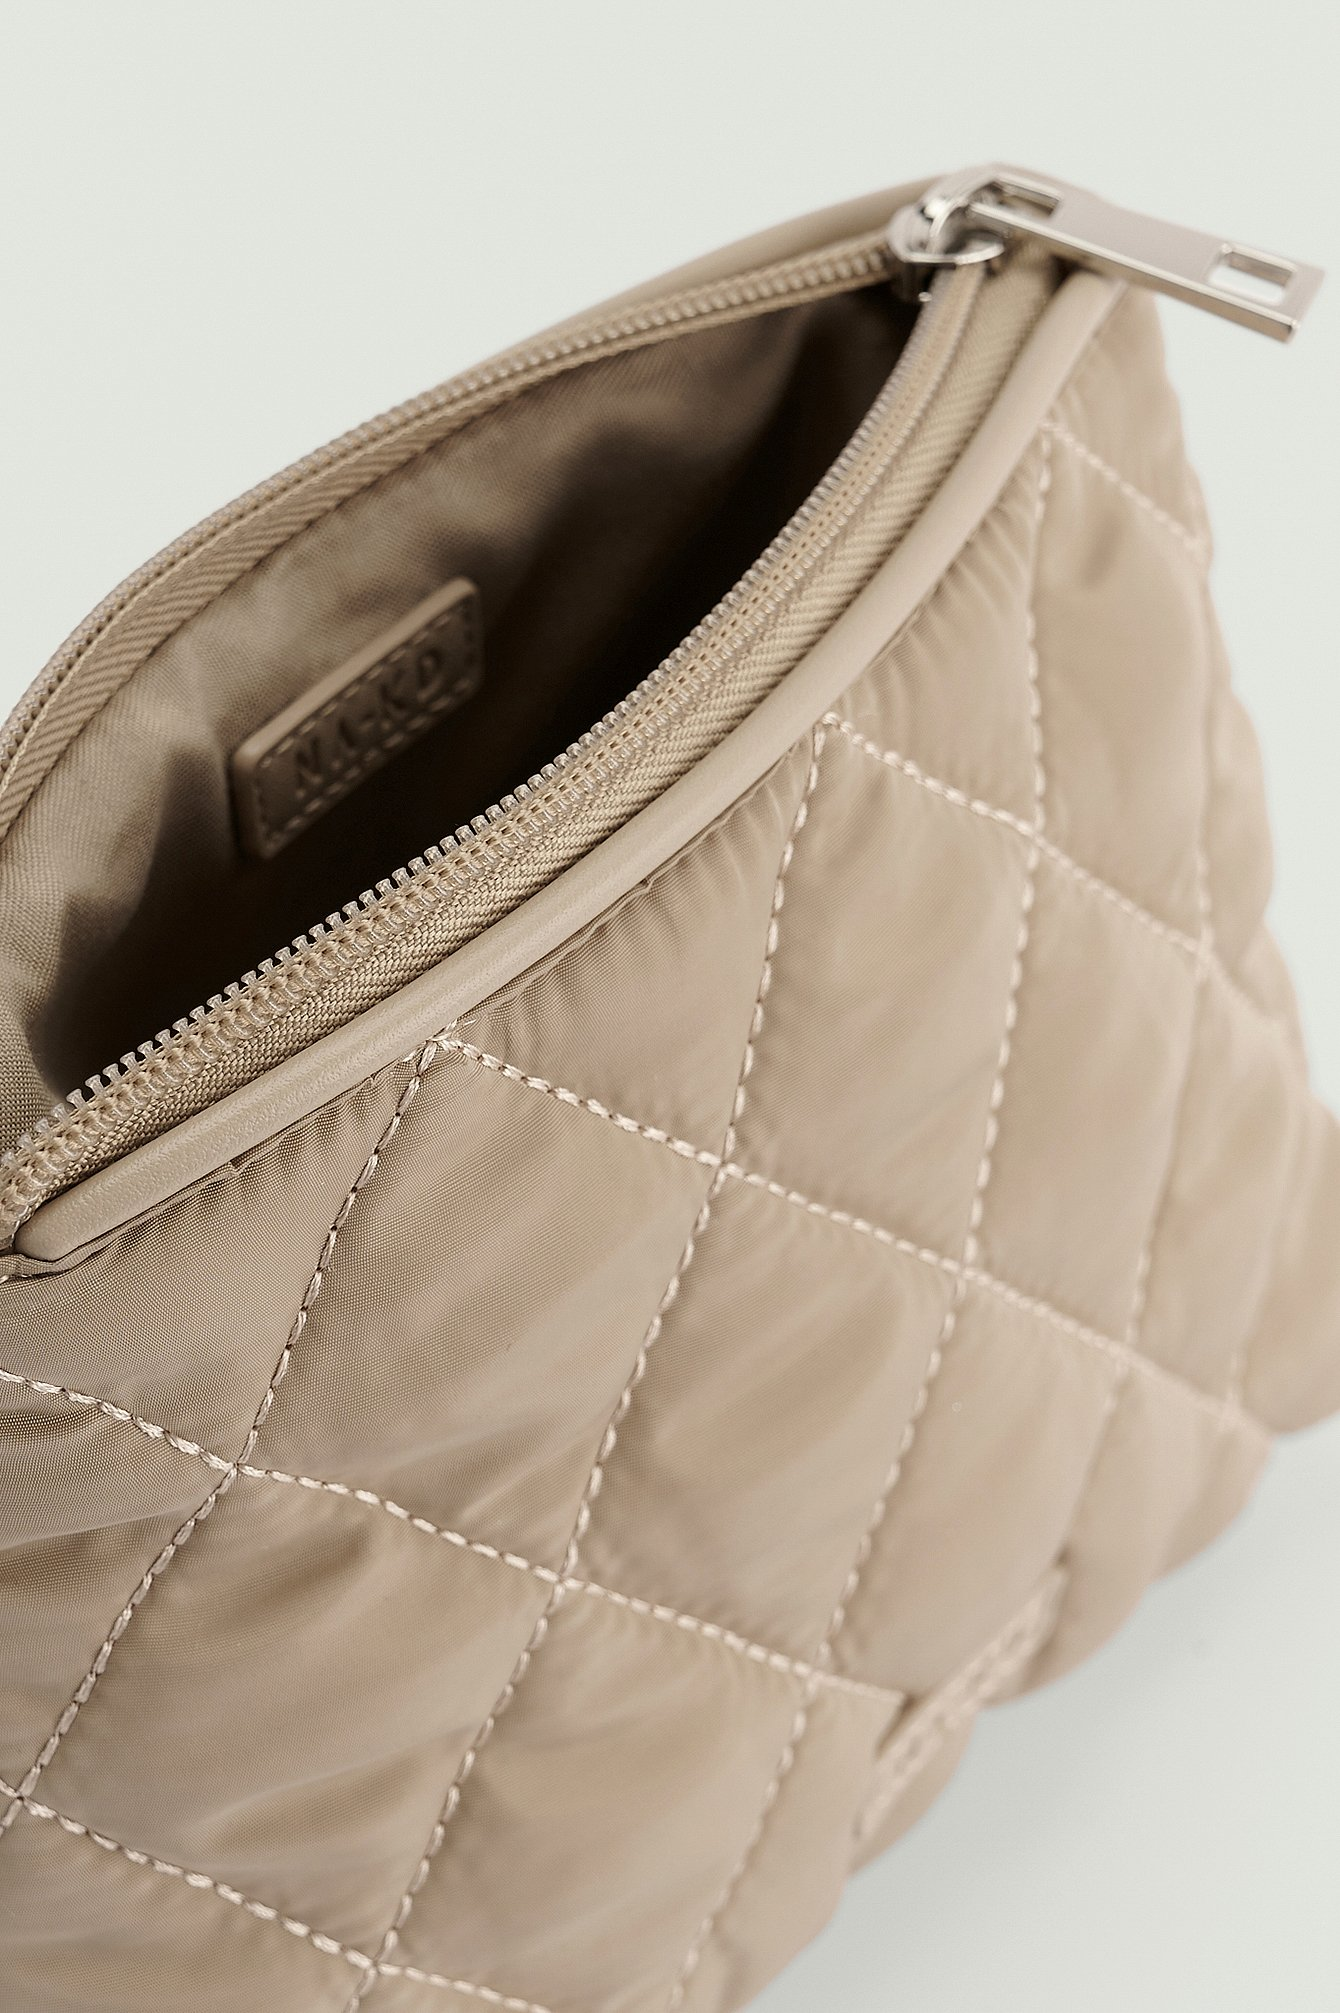 NA-KD Accessories Quilted Make Up Bag - Beige